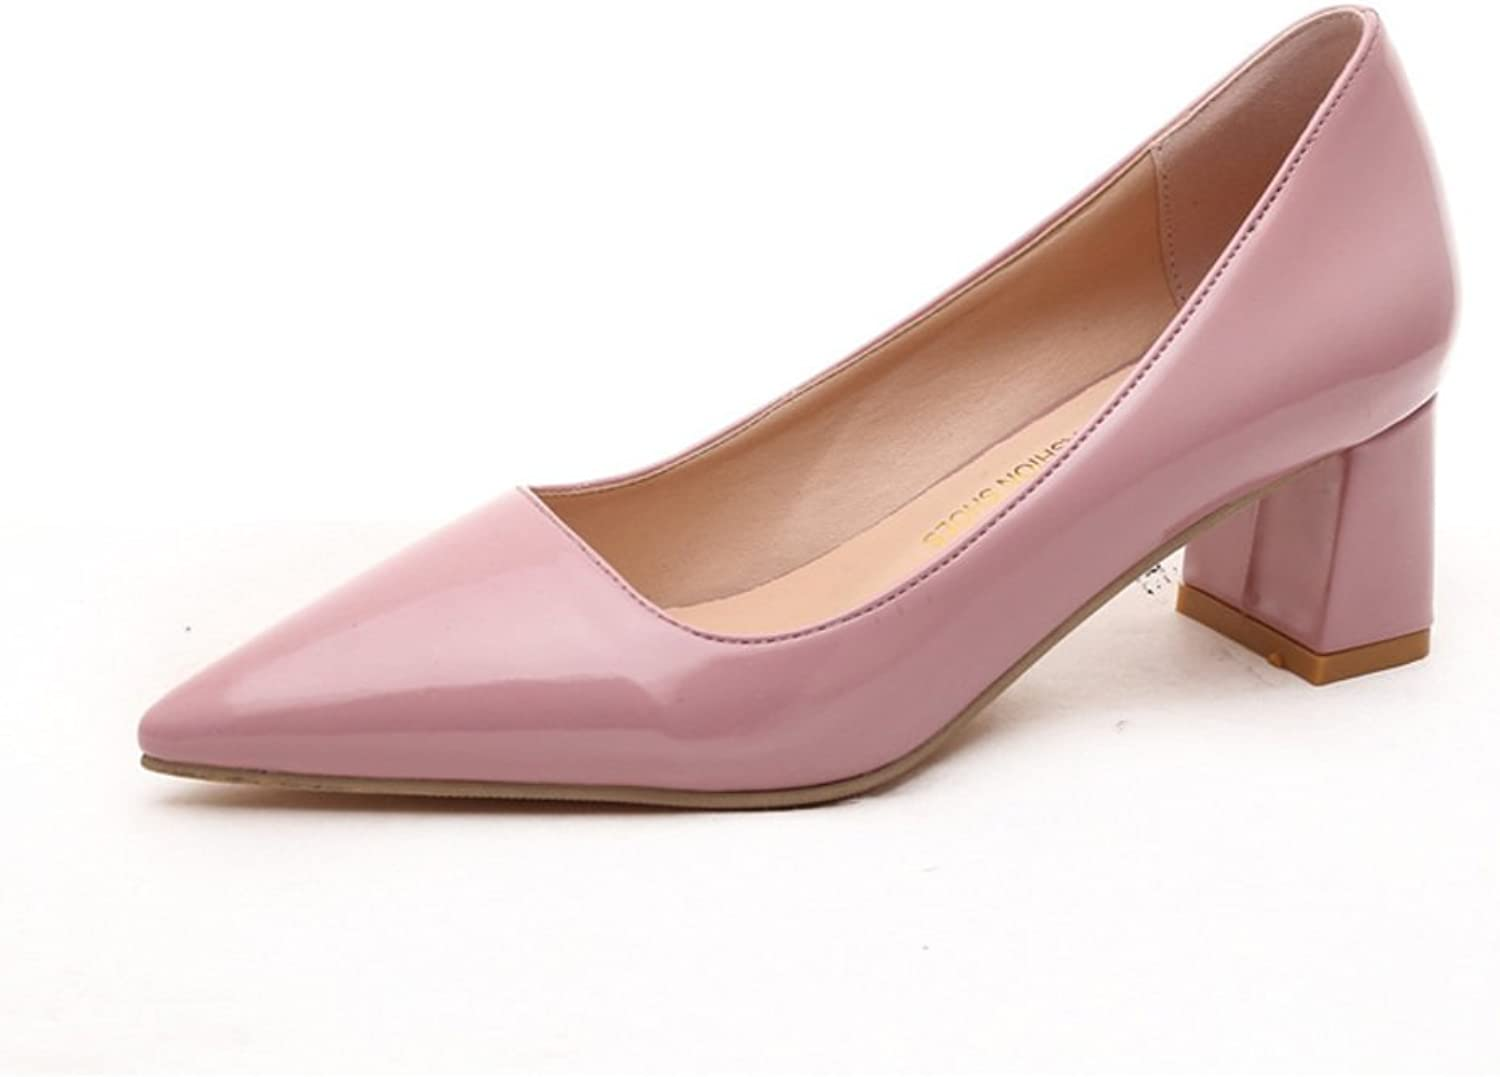 Spring bow high heel womens shoes Pointed stiletto comfortable and versatile shoes